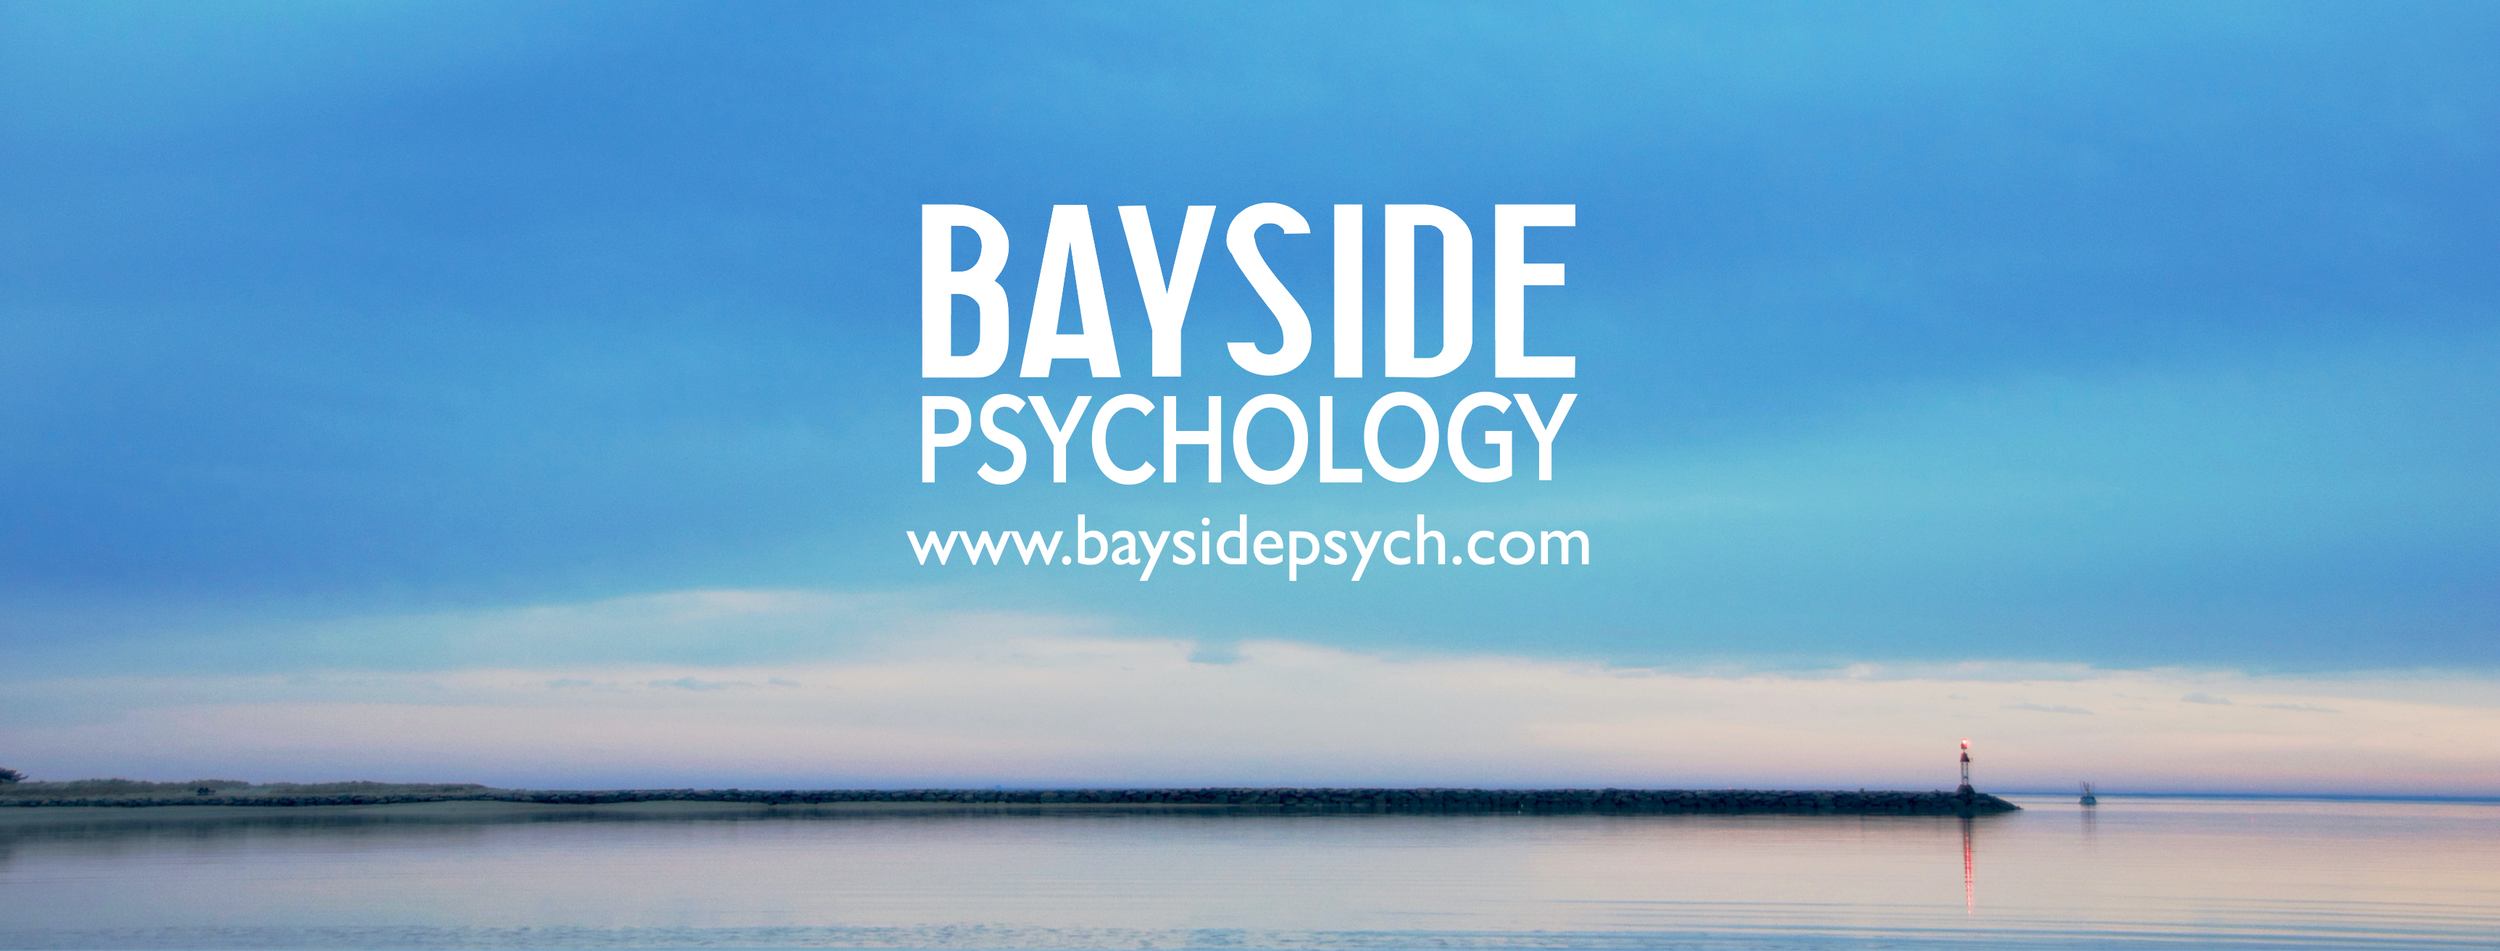 What to Expect/FAQ | Bayside Psychology | United States